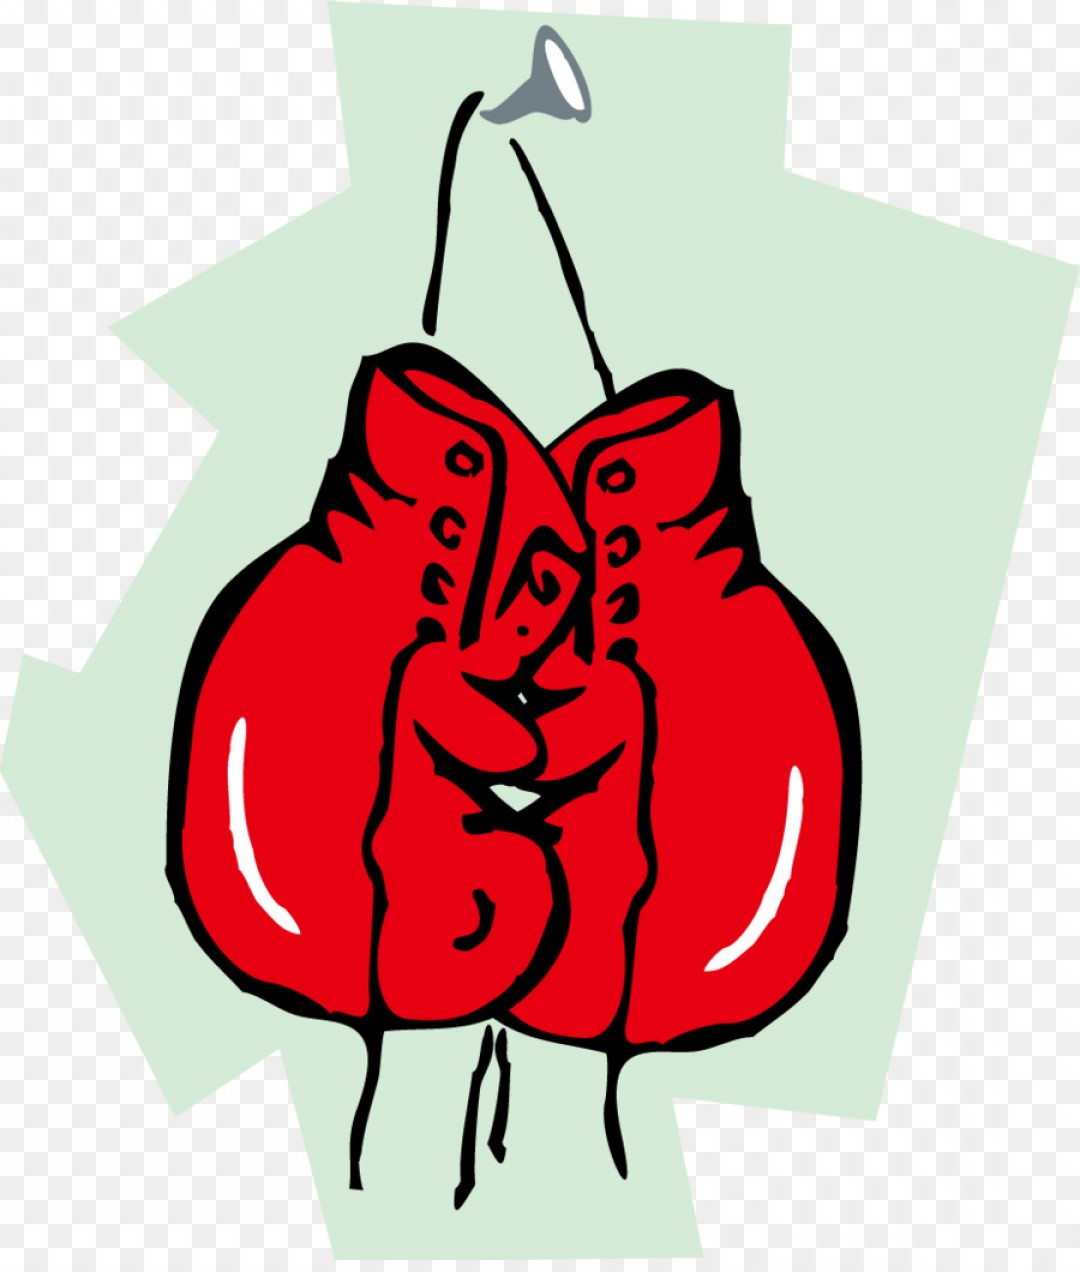 Boxing Gloves Vector Clip Art: Png Boxing Glove Clip Art Cartoon Red Boxing Gloves Ve